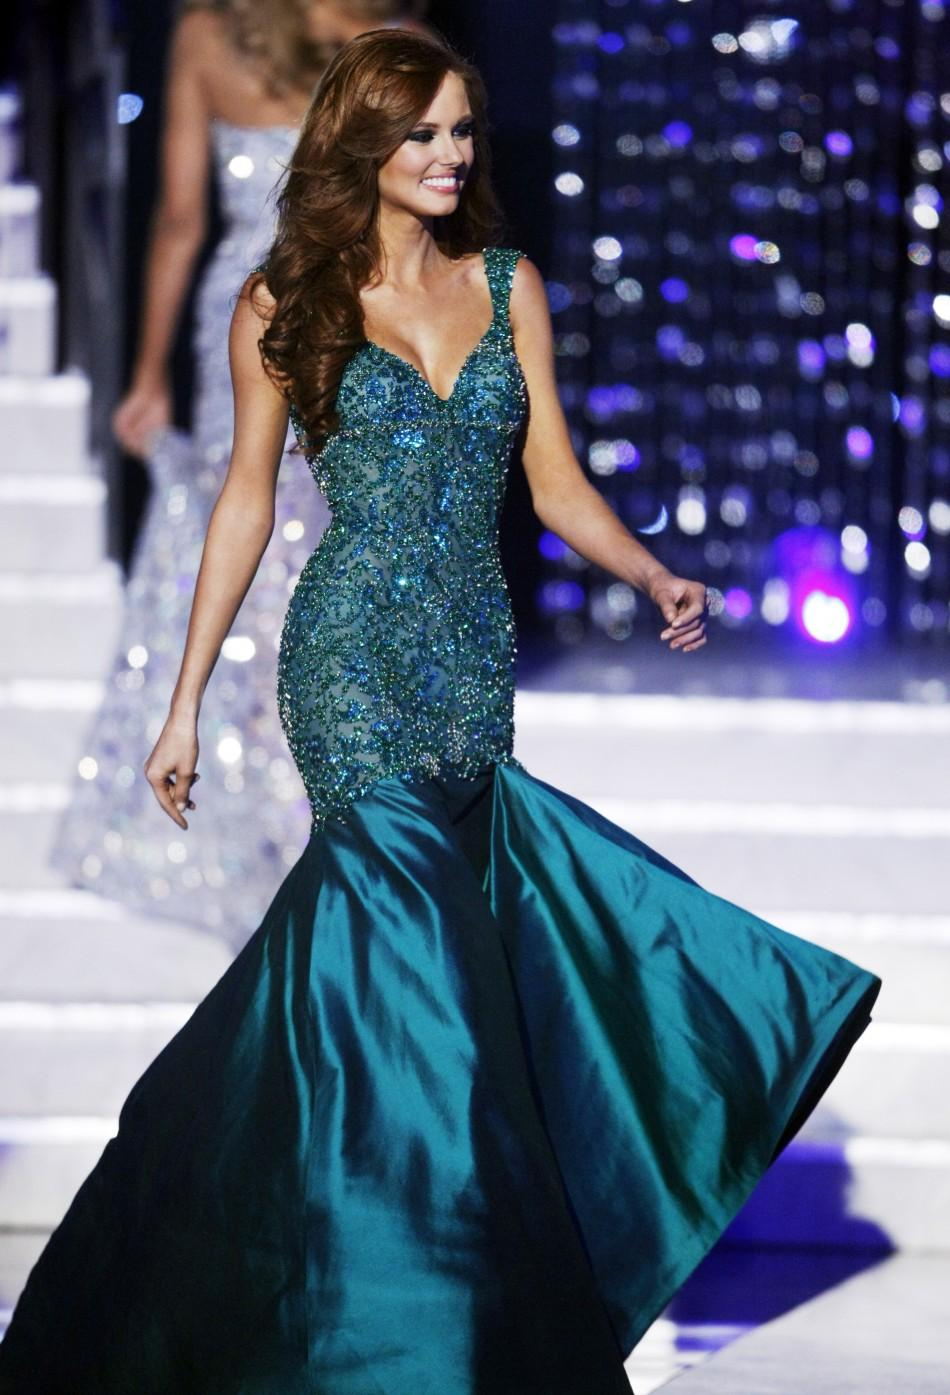 Miss California Alyssa Campanella competes in her evening gown during the 2011 Miss USA pageant in Las Vegas 20/06/2011 System ID: RTR2NV80 Image ID: GM1E76K178201 Photographer: REUTERS/Steve Marcus Miss California Alyssa Campanella competes in her